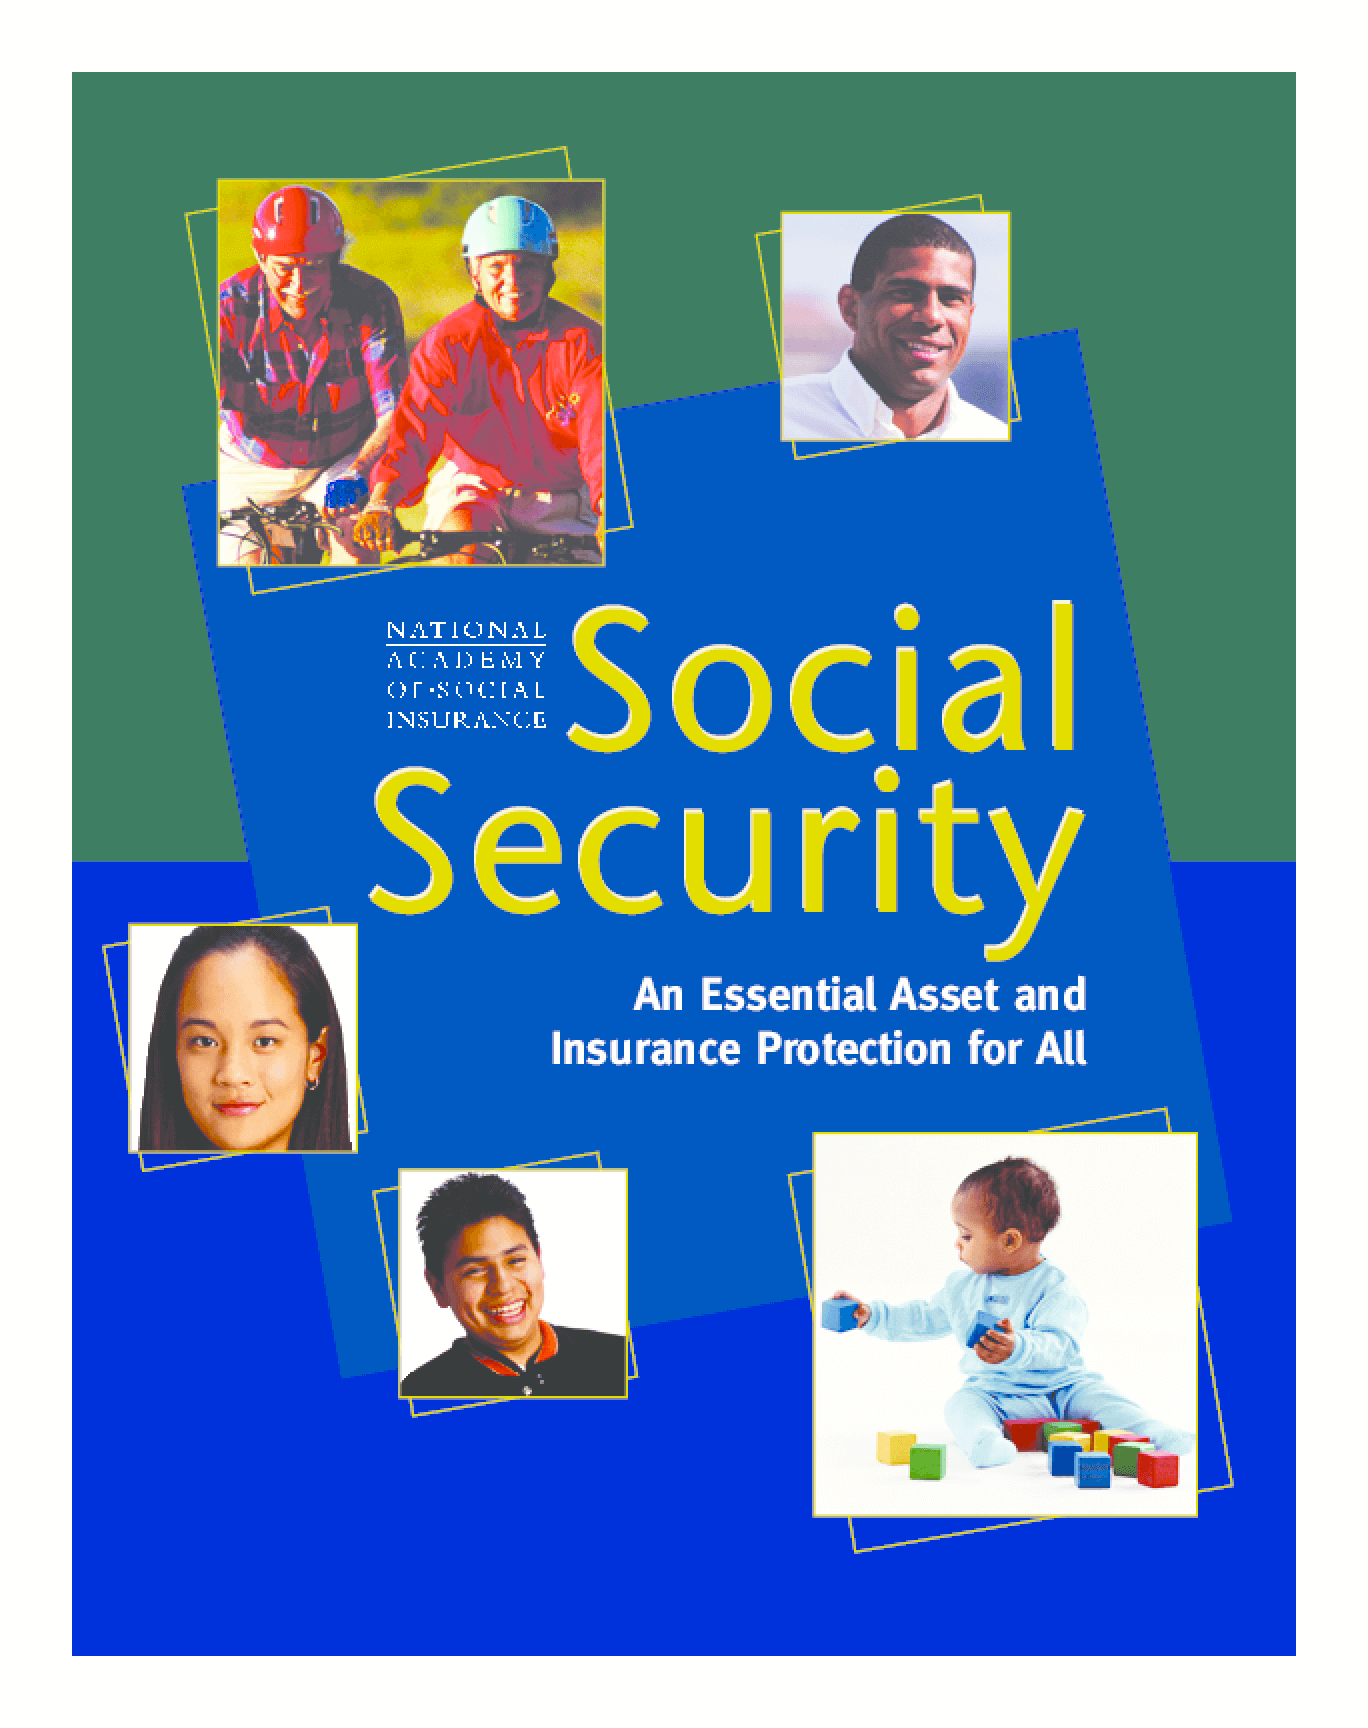 Social Security: An Essential Asset and Insurance Protection for All